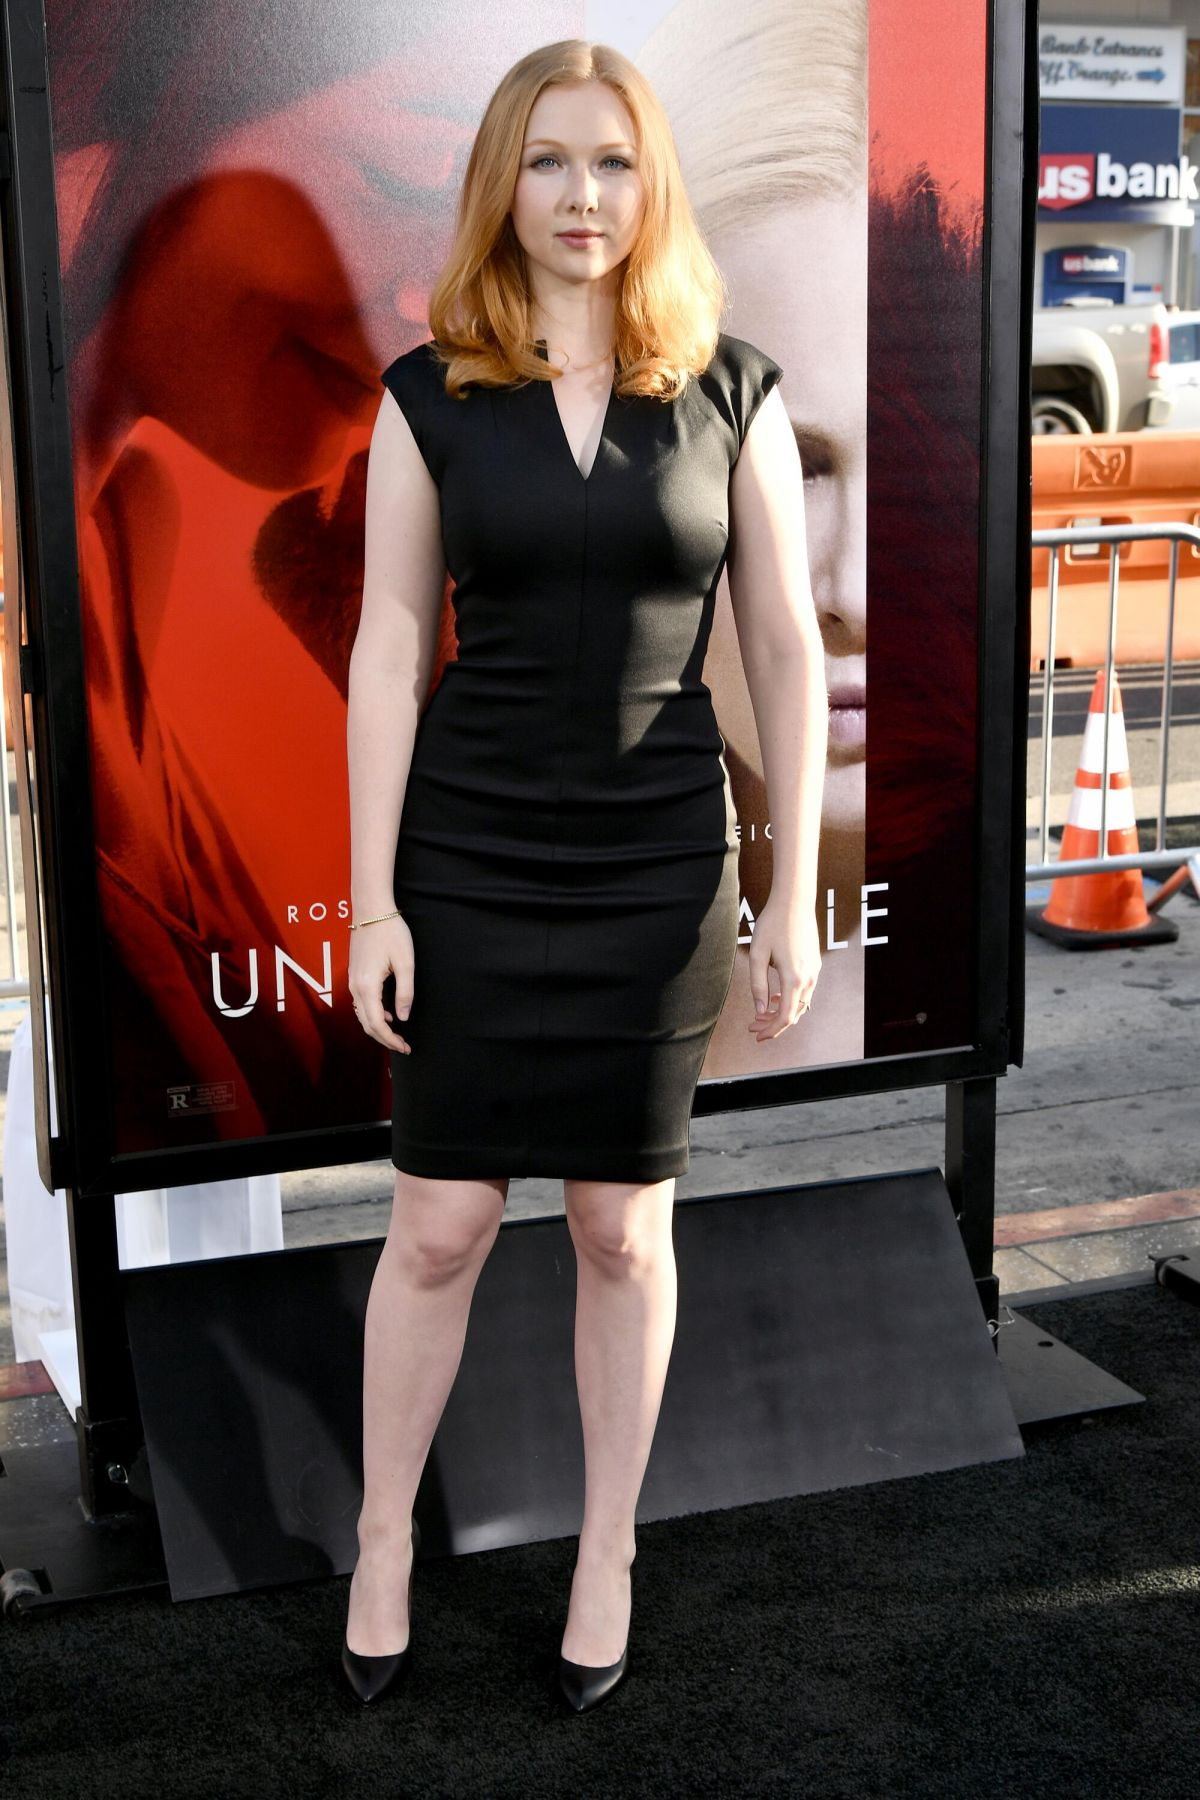 Molly quinn unforgettable premiere in la naked (11 images)